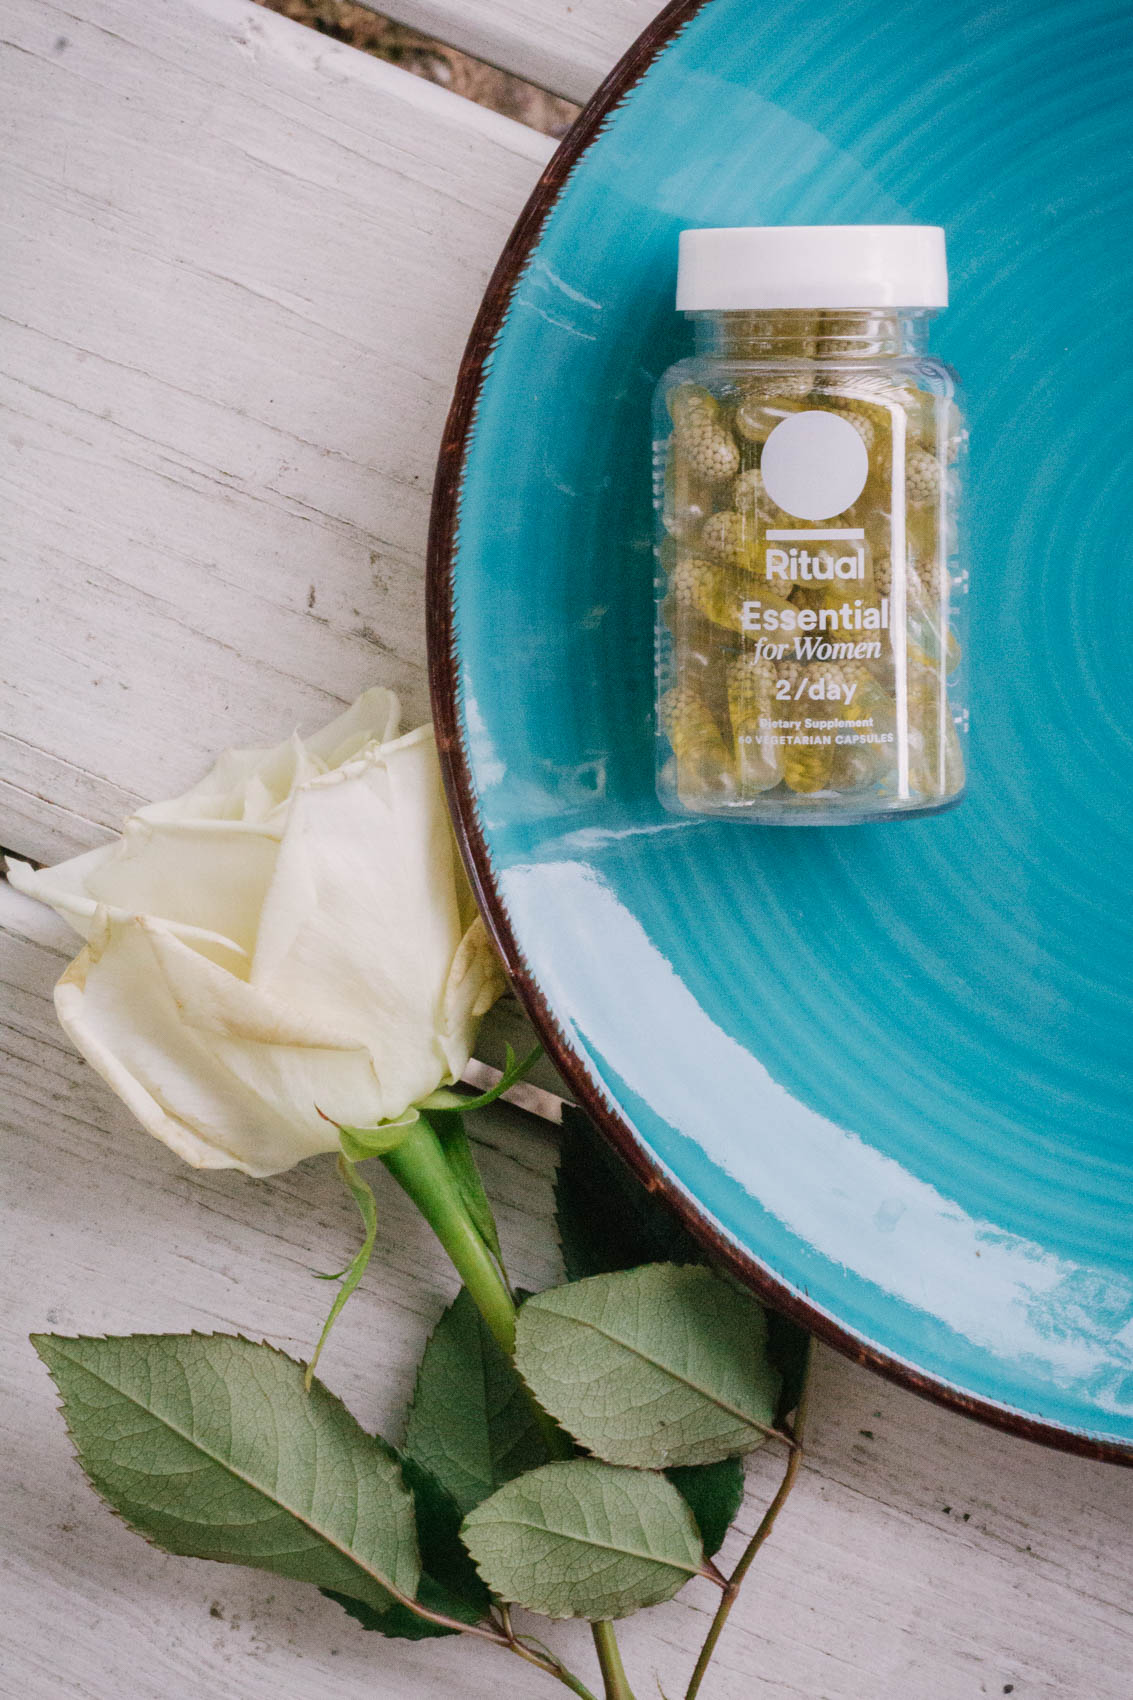 I recently added Ritual Vitamins to my routine and they've given me more energy, are minty fresh, and have the best ingredients.